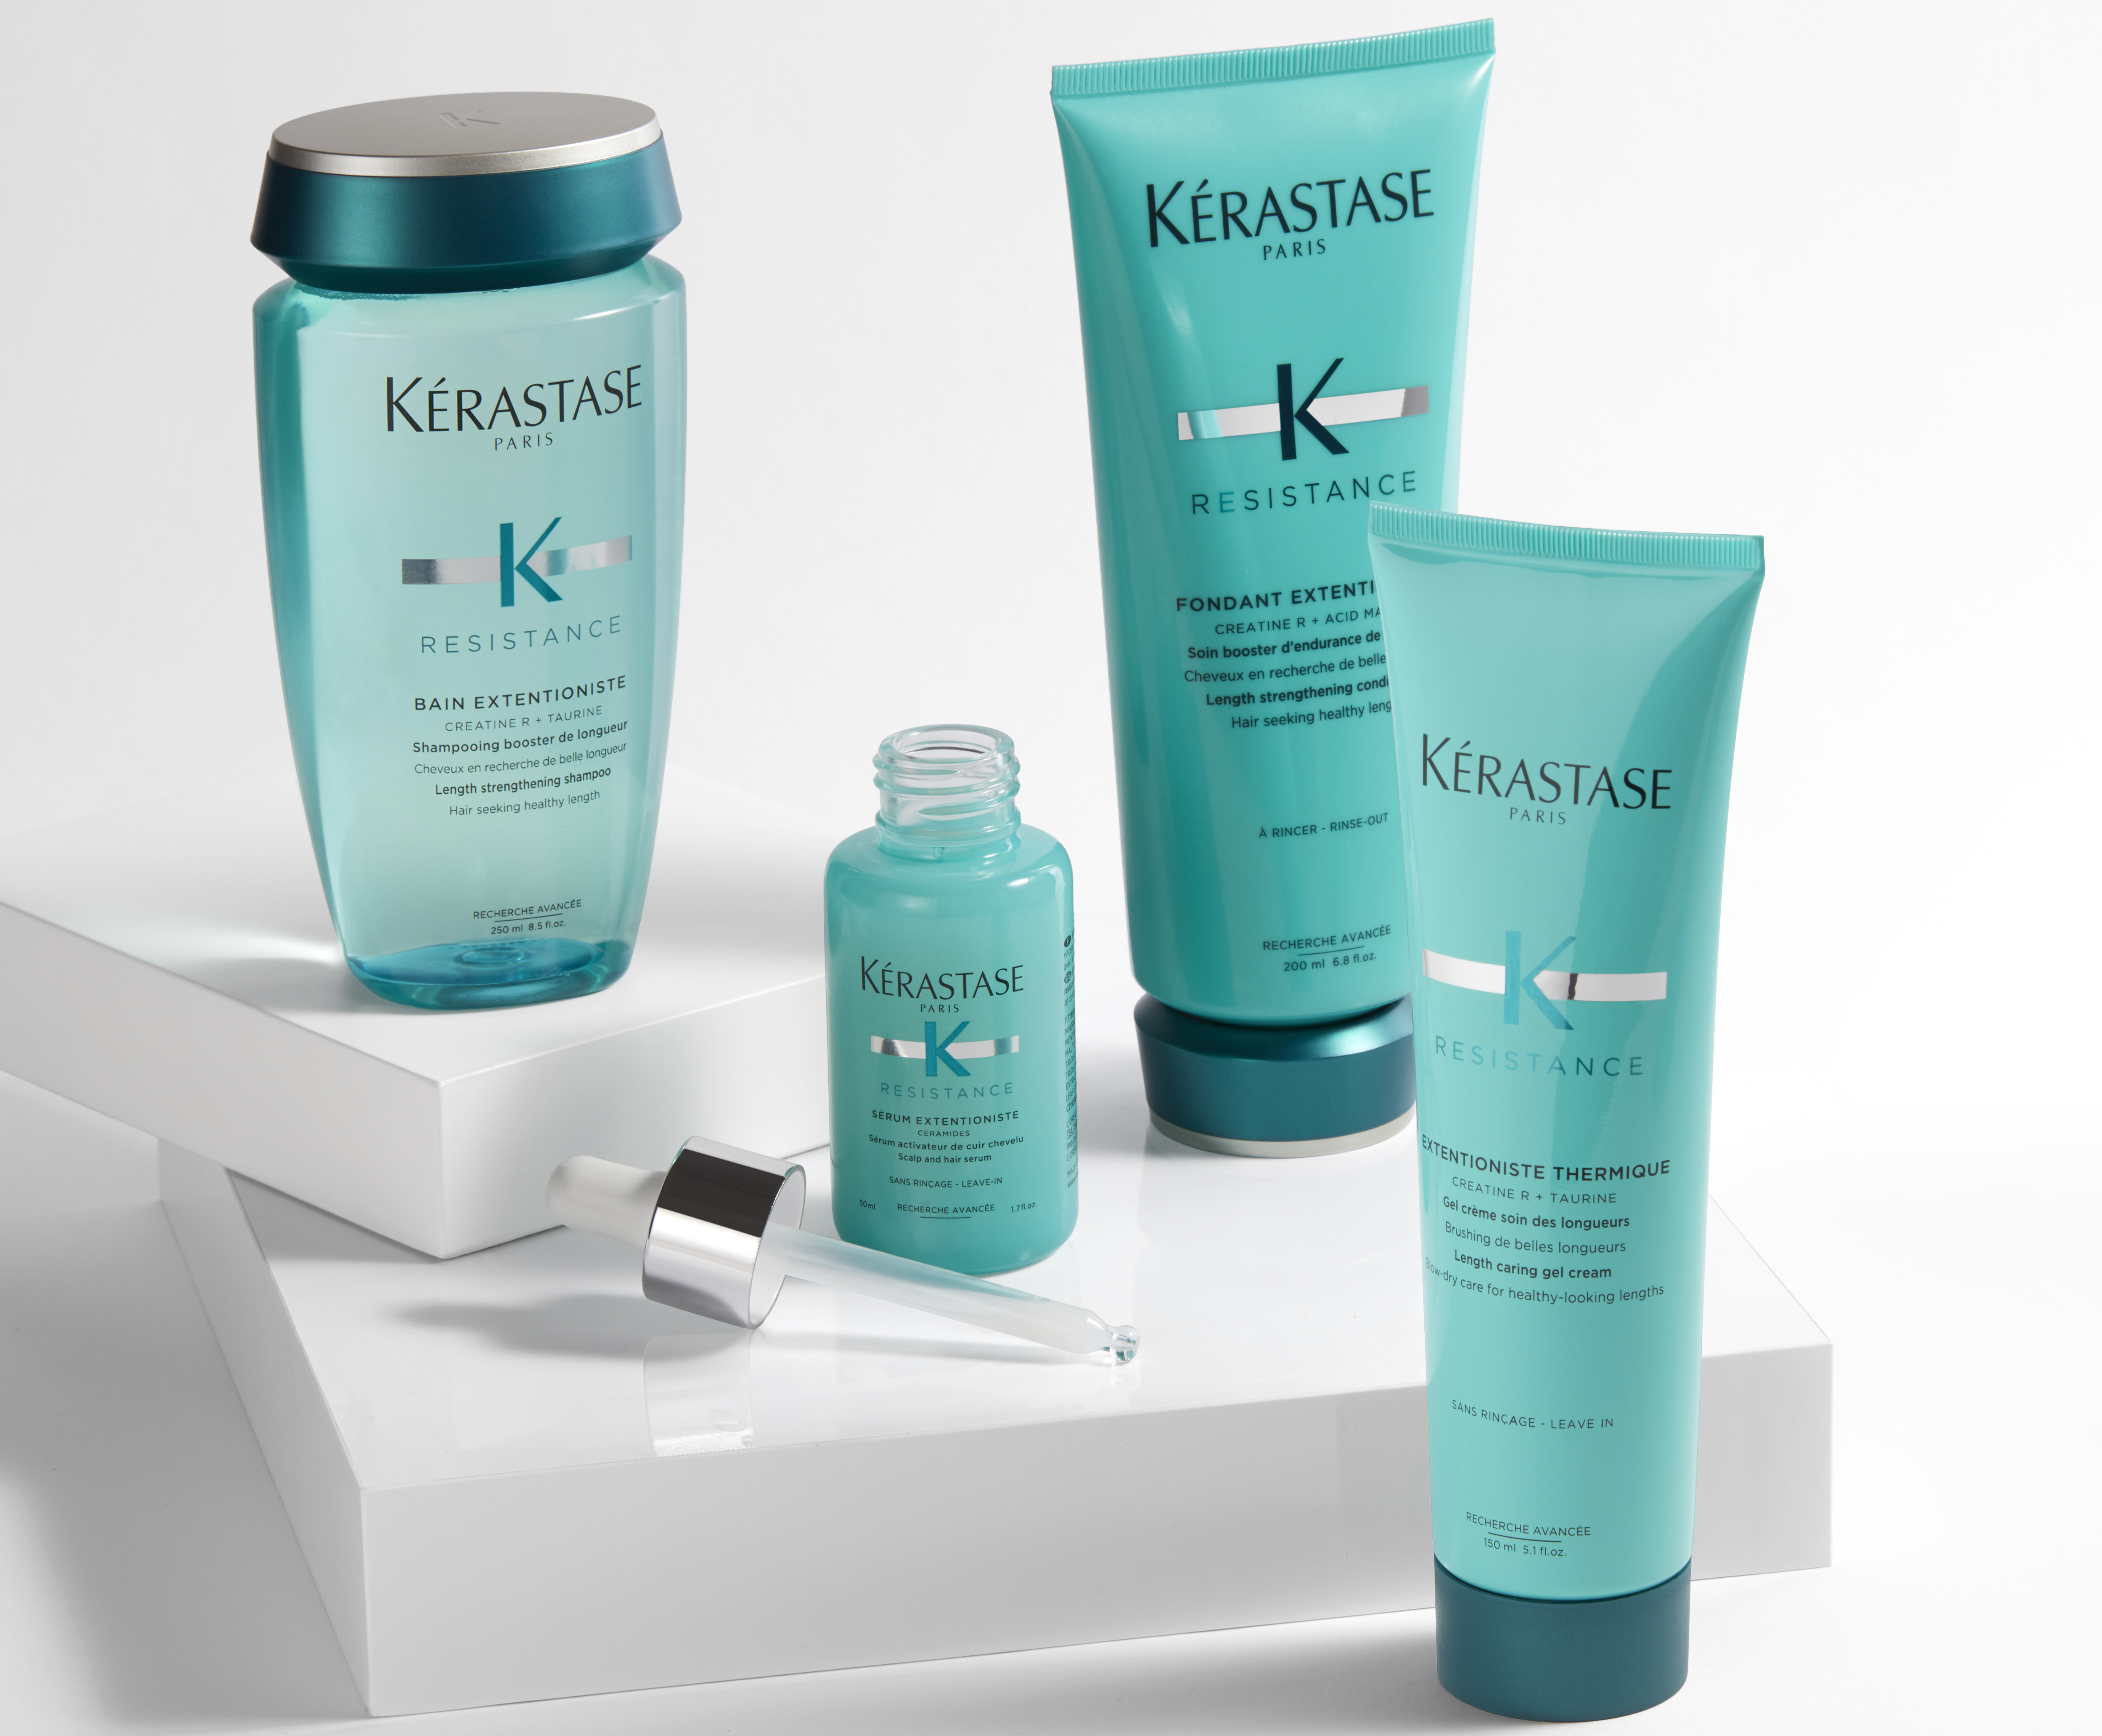 Top tips from Kerastase for post gym hair!